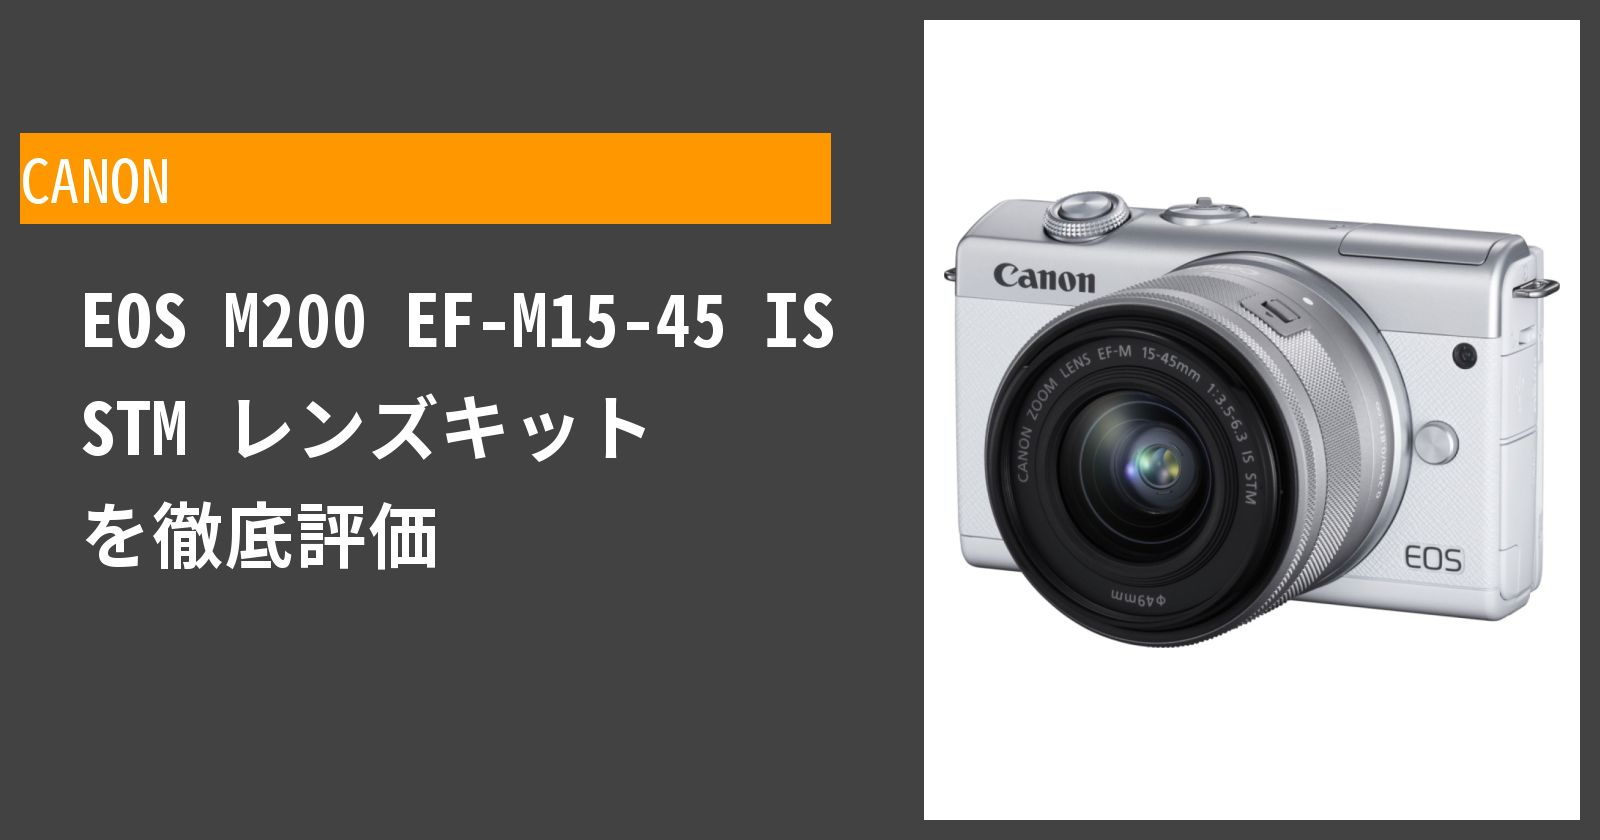 EOS M200 EF-M15-45 IS STM レンズキットを徹底評価